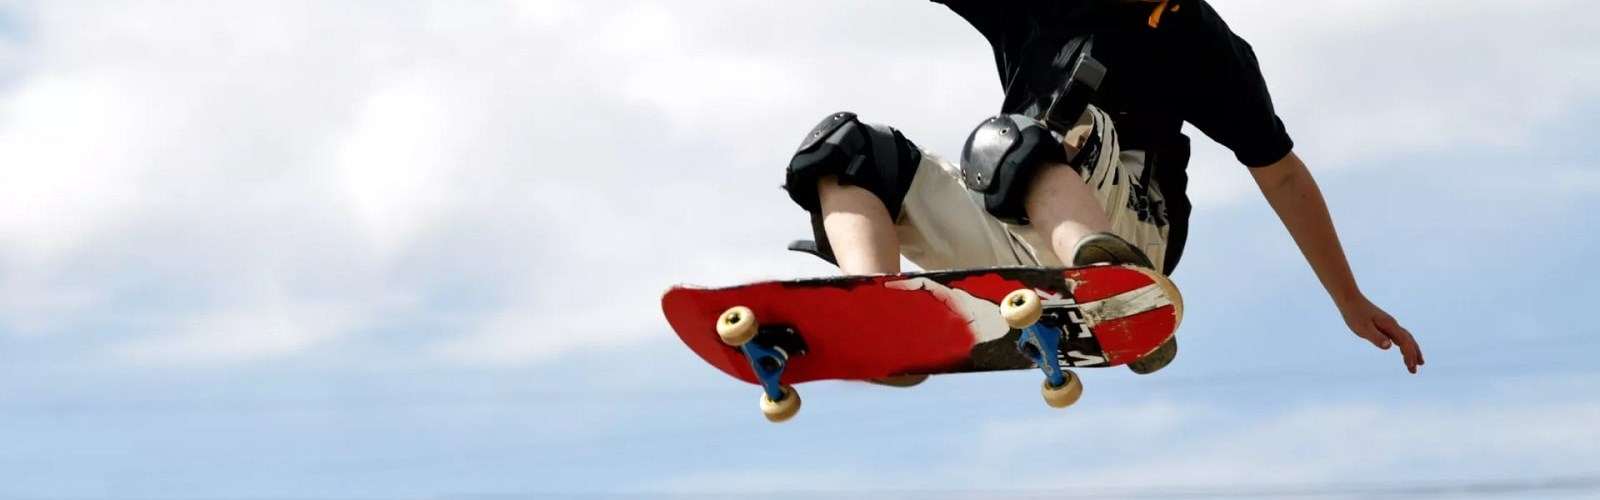 Young boy riding skateboard with protective gear